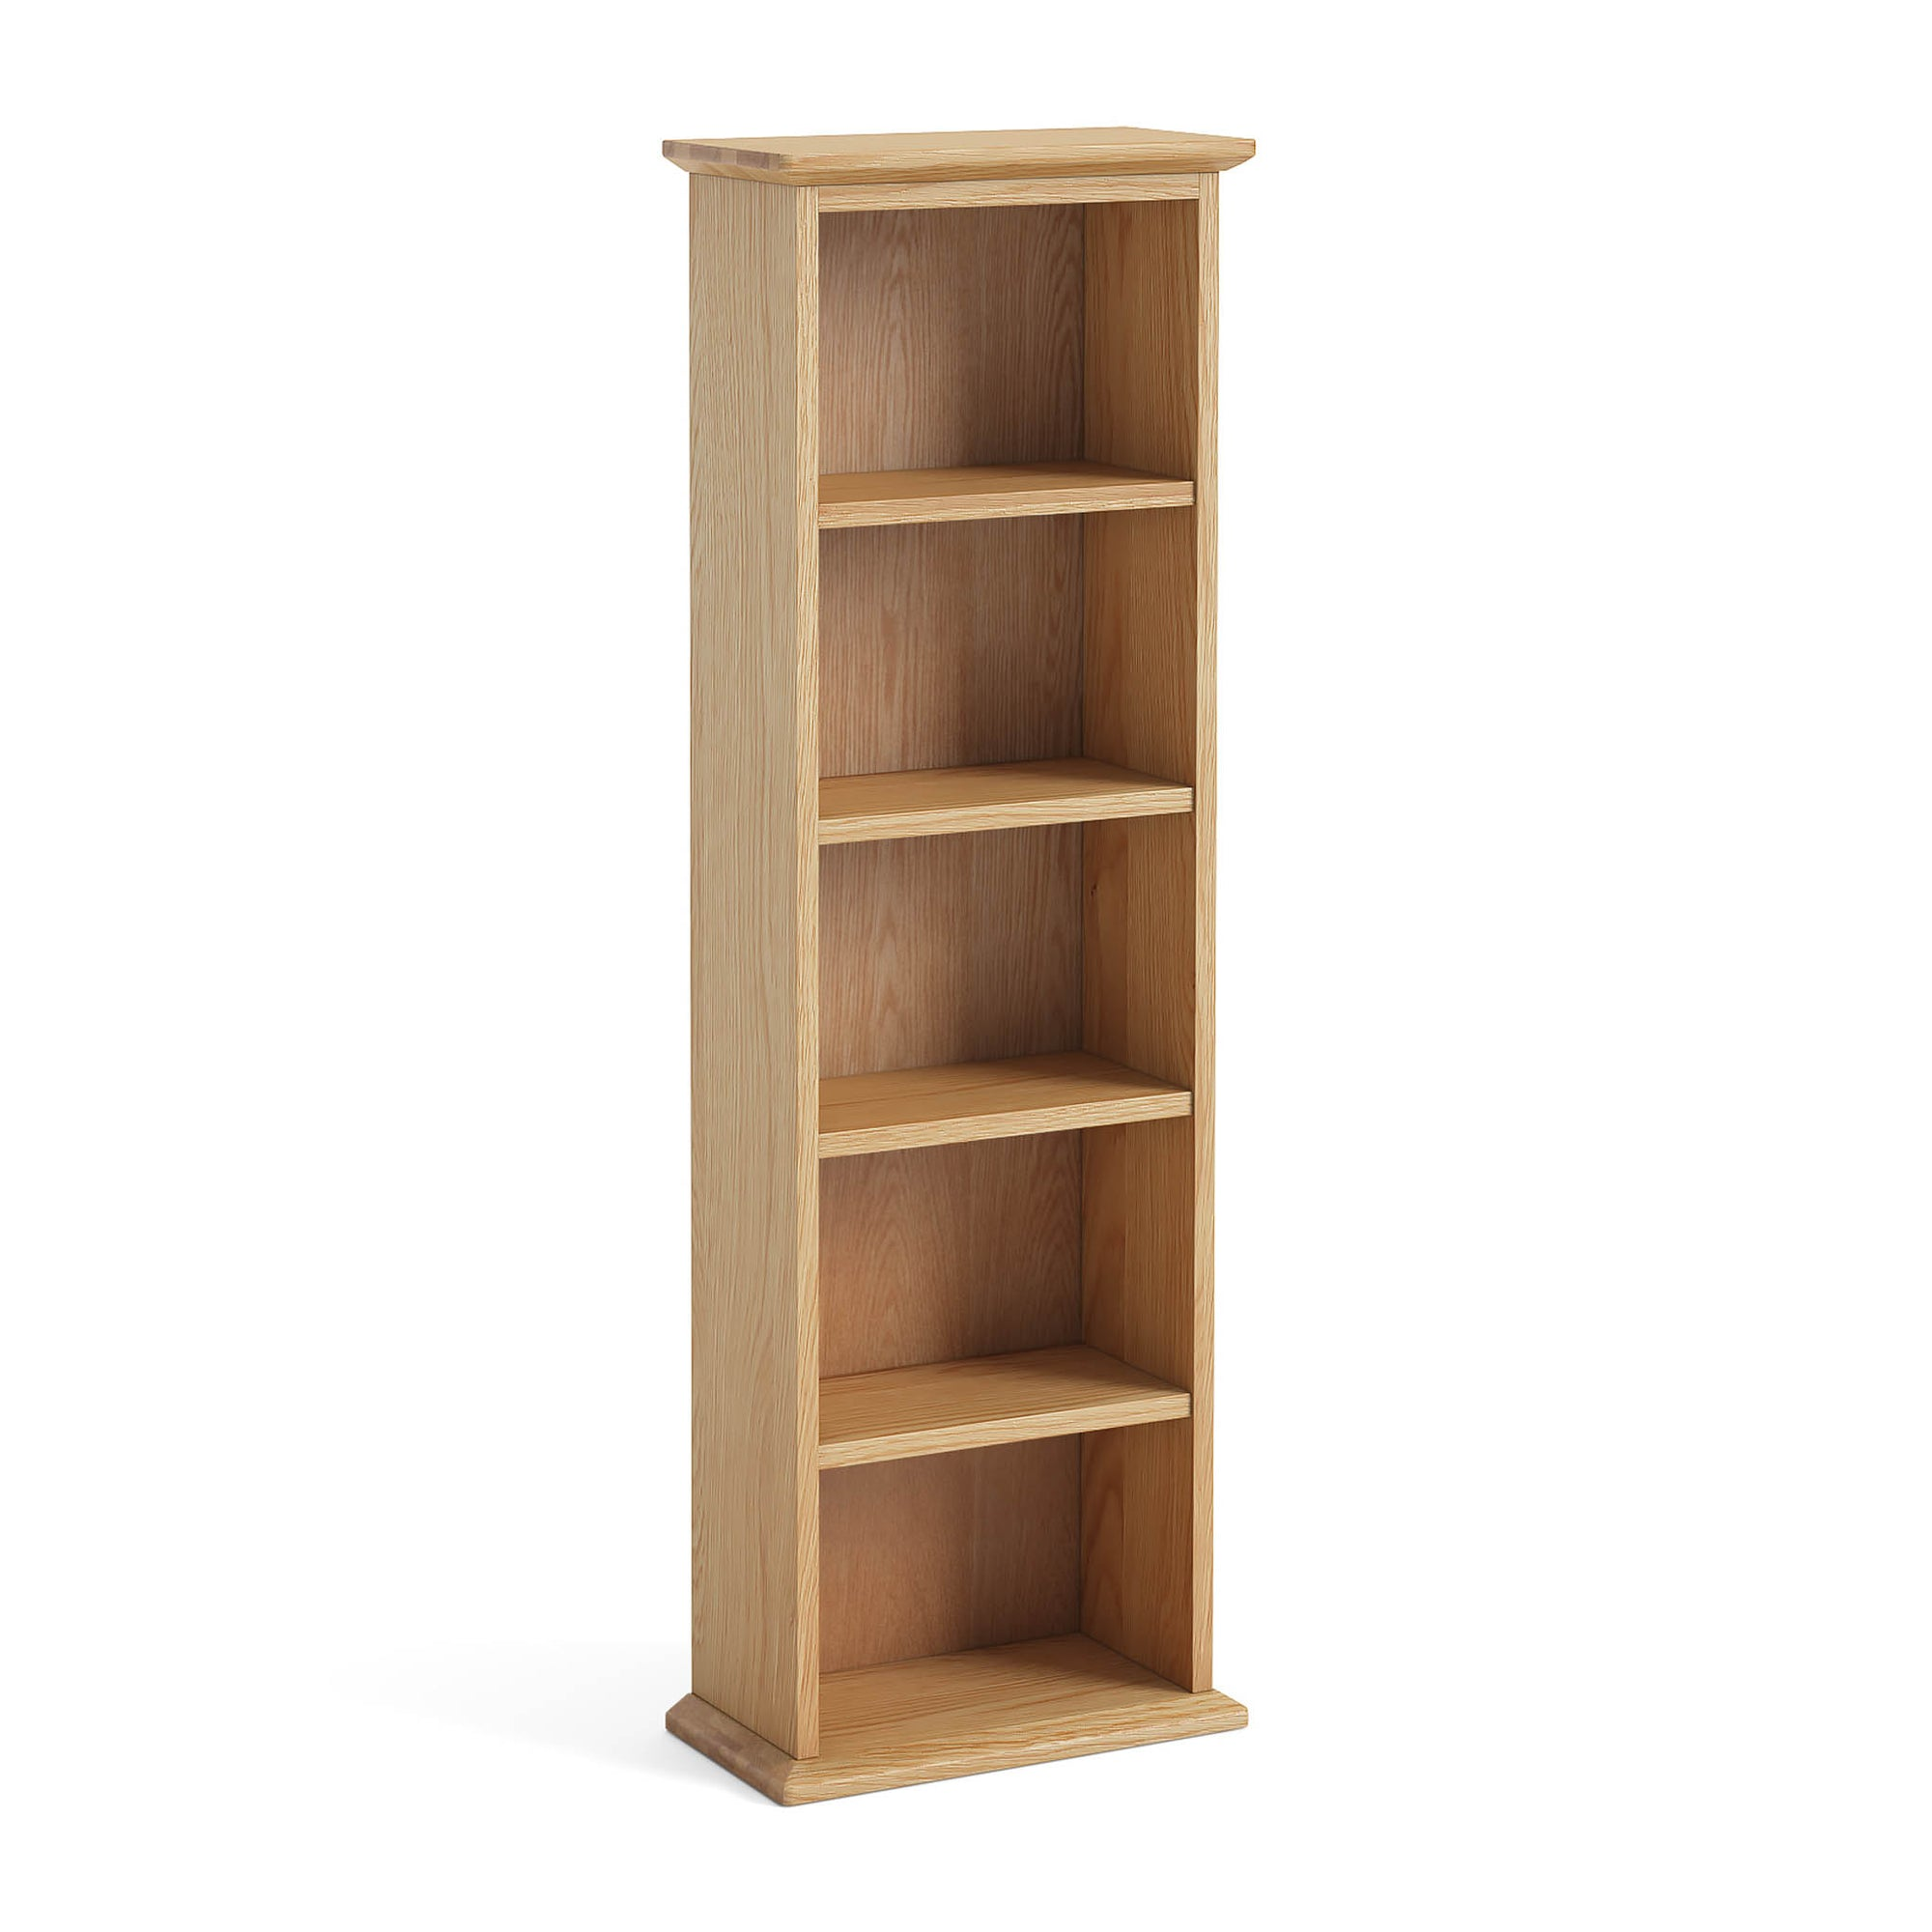 Light Oak Double DVD Tower by Roseland Furniture